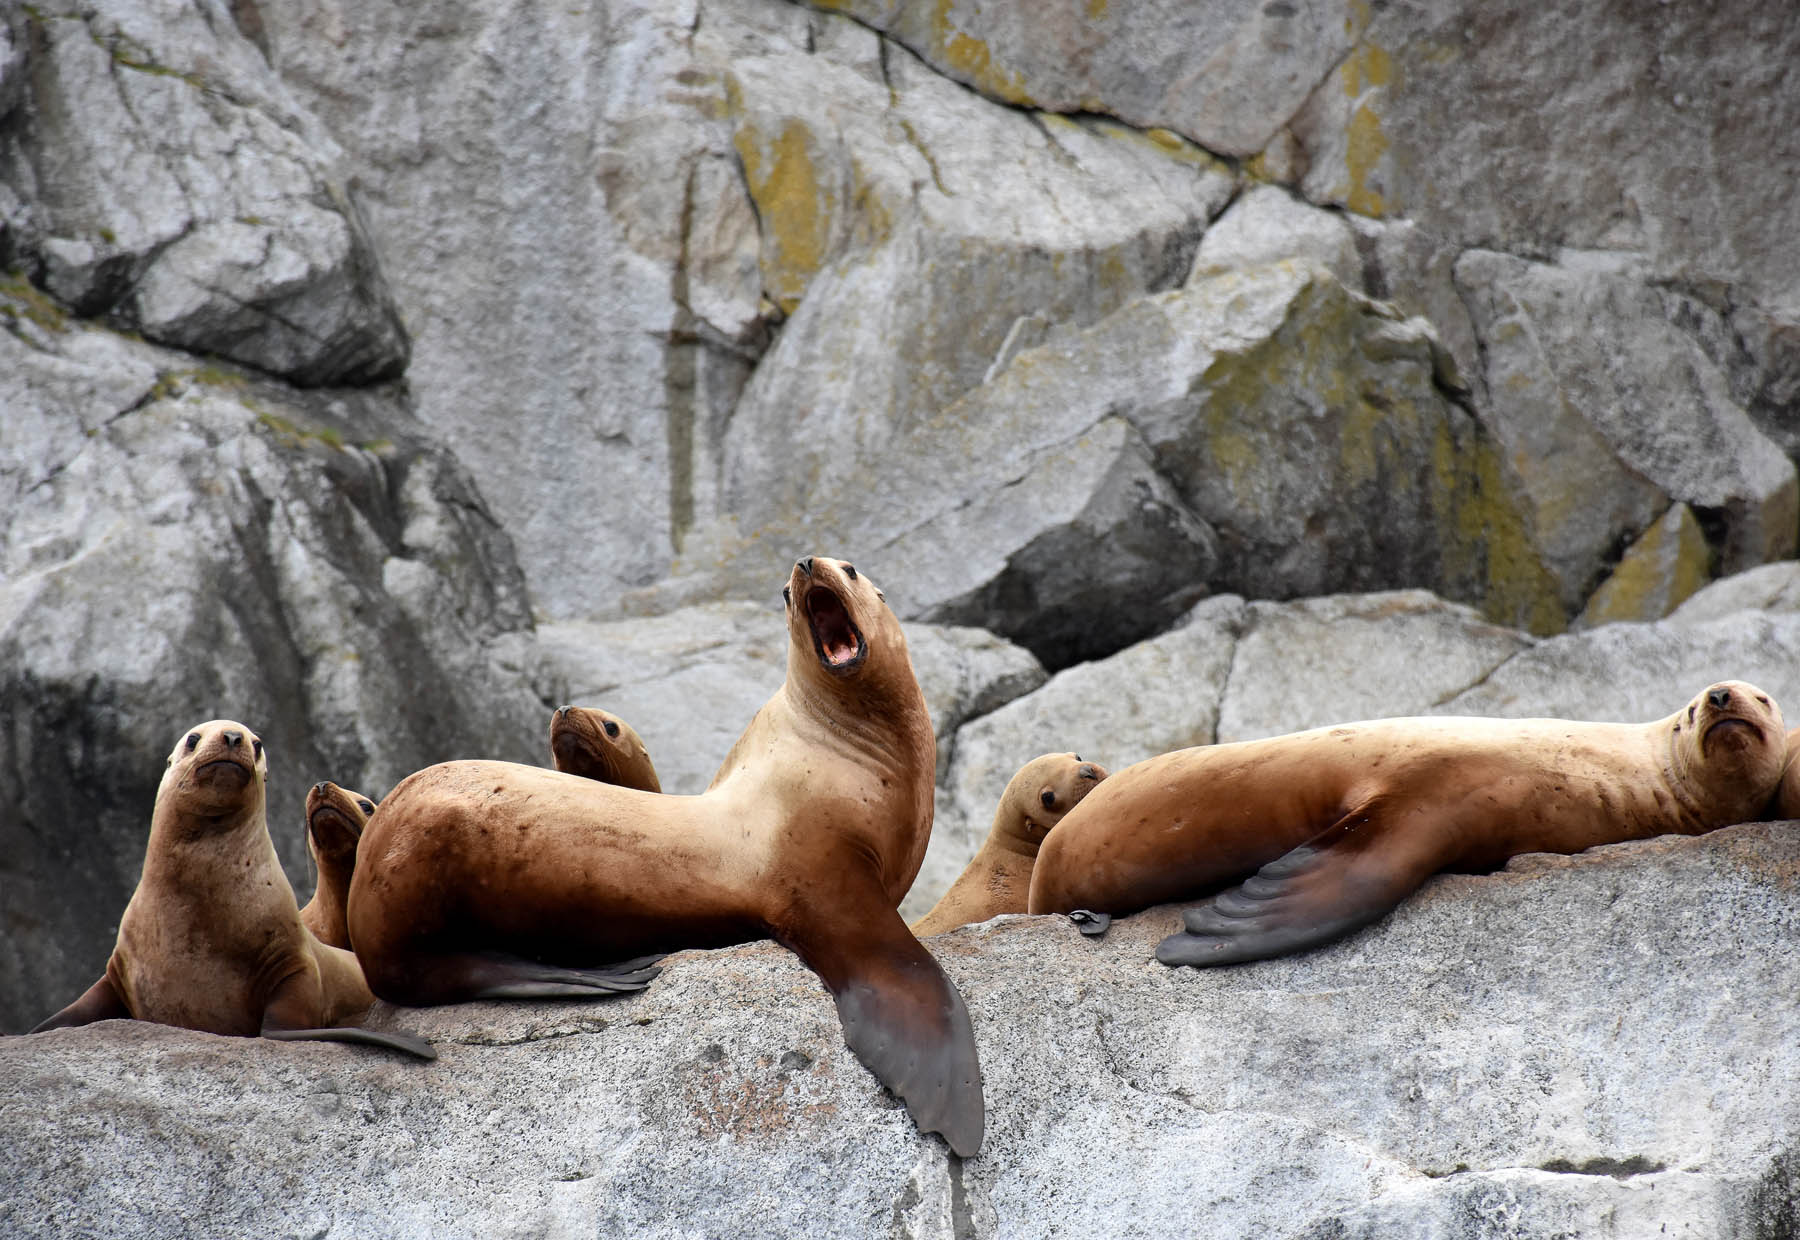 Sea lions lounging on rocks.